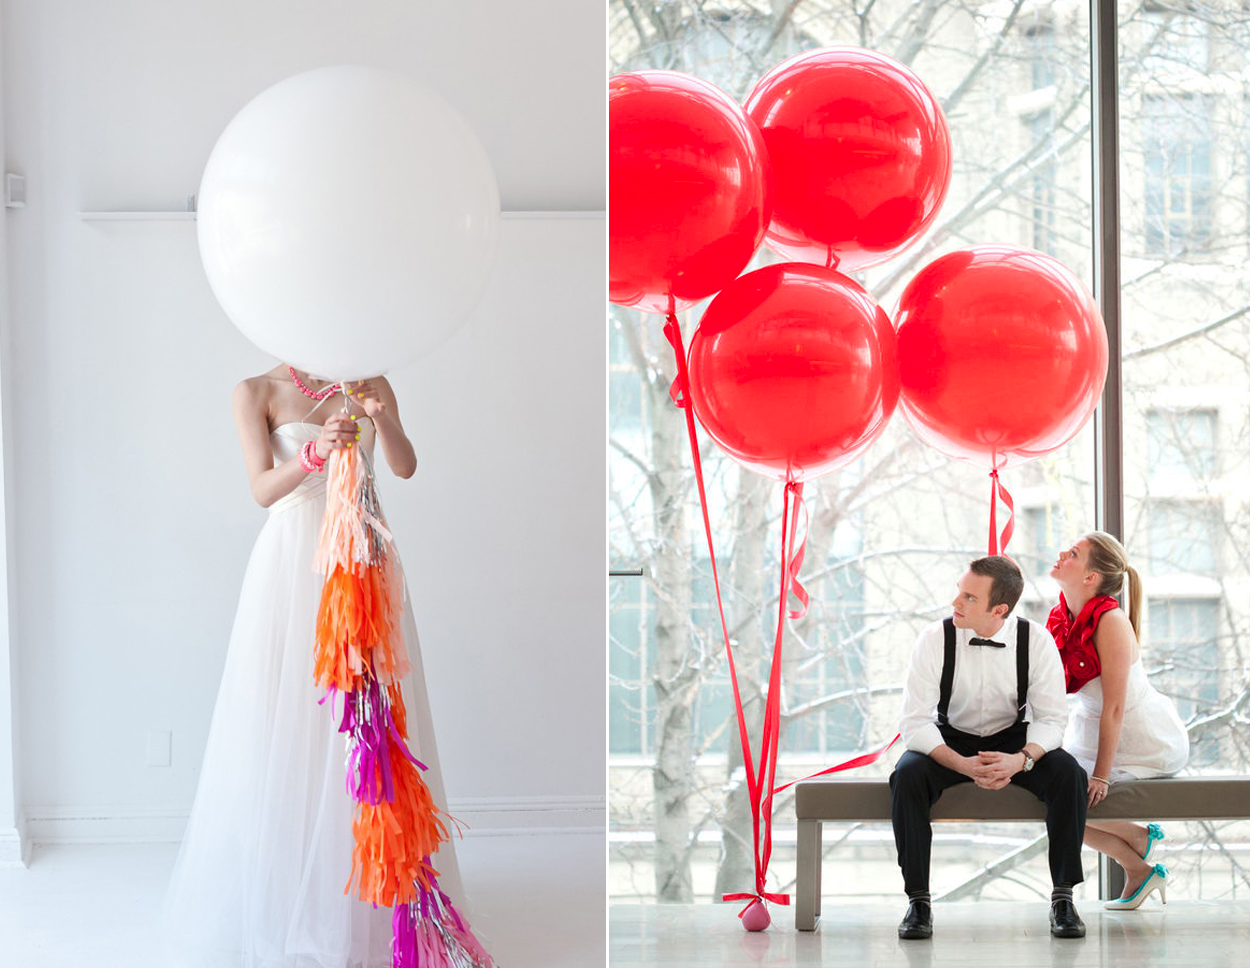 Balloon wedding inspiration diy wedding reception ideas for Balloon decoration ideas for weddings